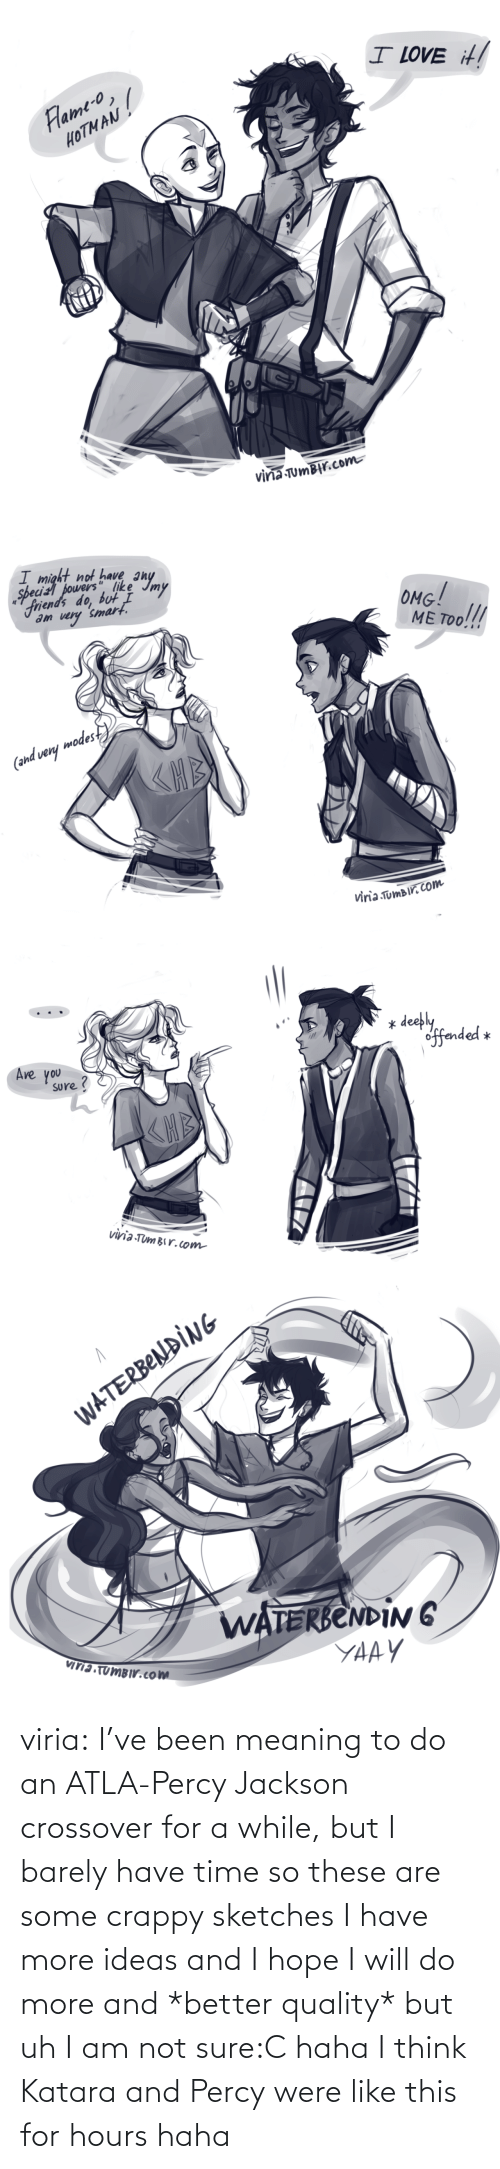 ideas: viria:  I've been meaning to do an ATLA-Percy Jackson crossover for a while, but I barely have time so these are some crappy sketches I have more ideas and I hope I will do more and *better quality* but uh I am not sure:C haha I think Katara and Percy were like this for hours haha